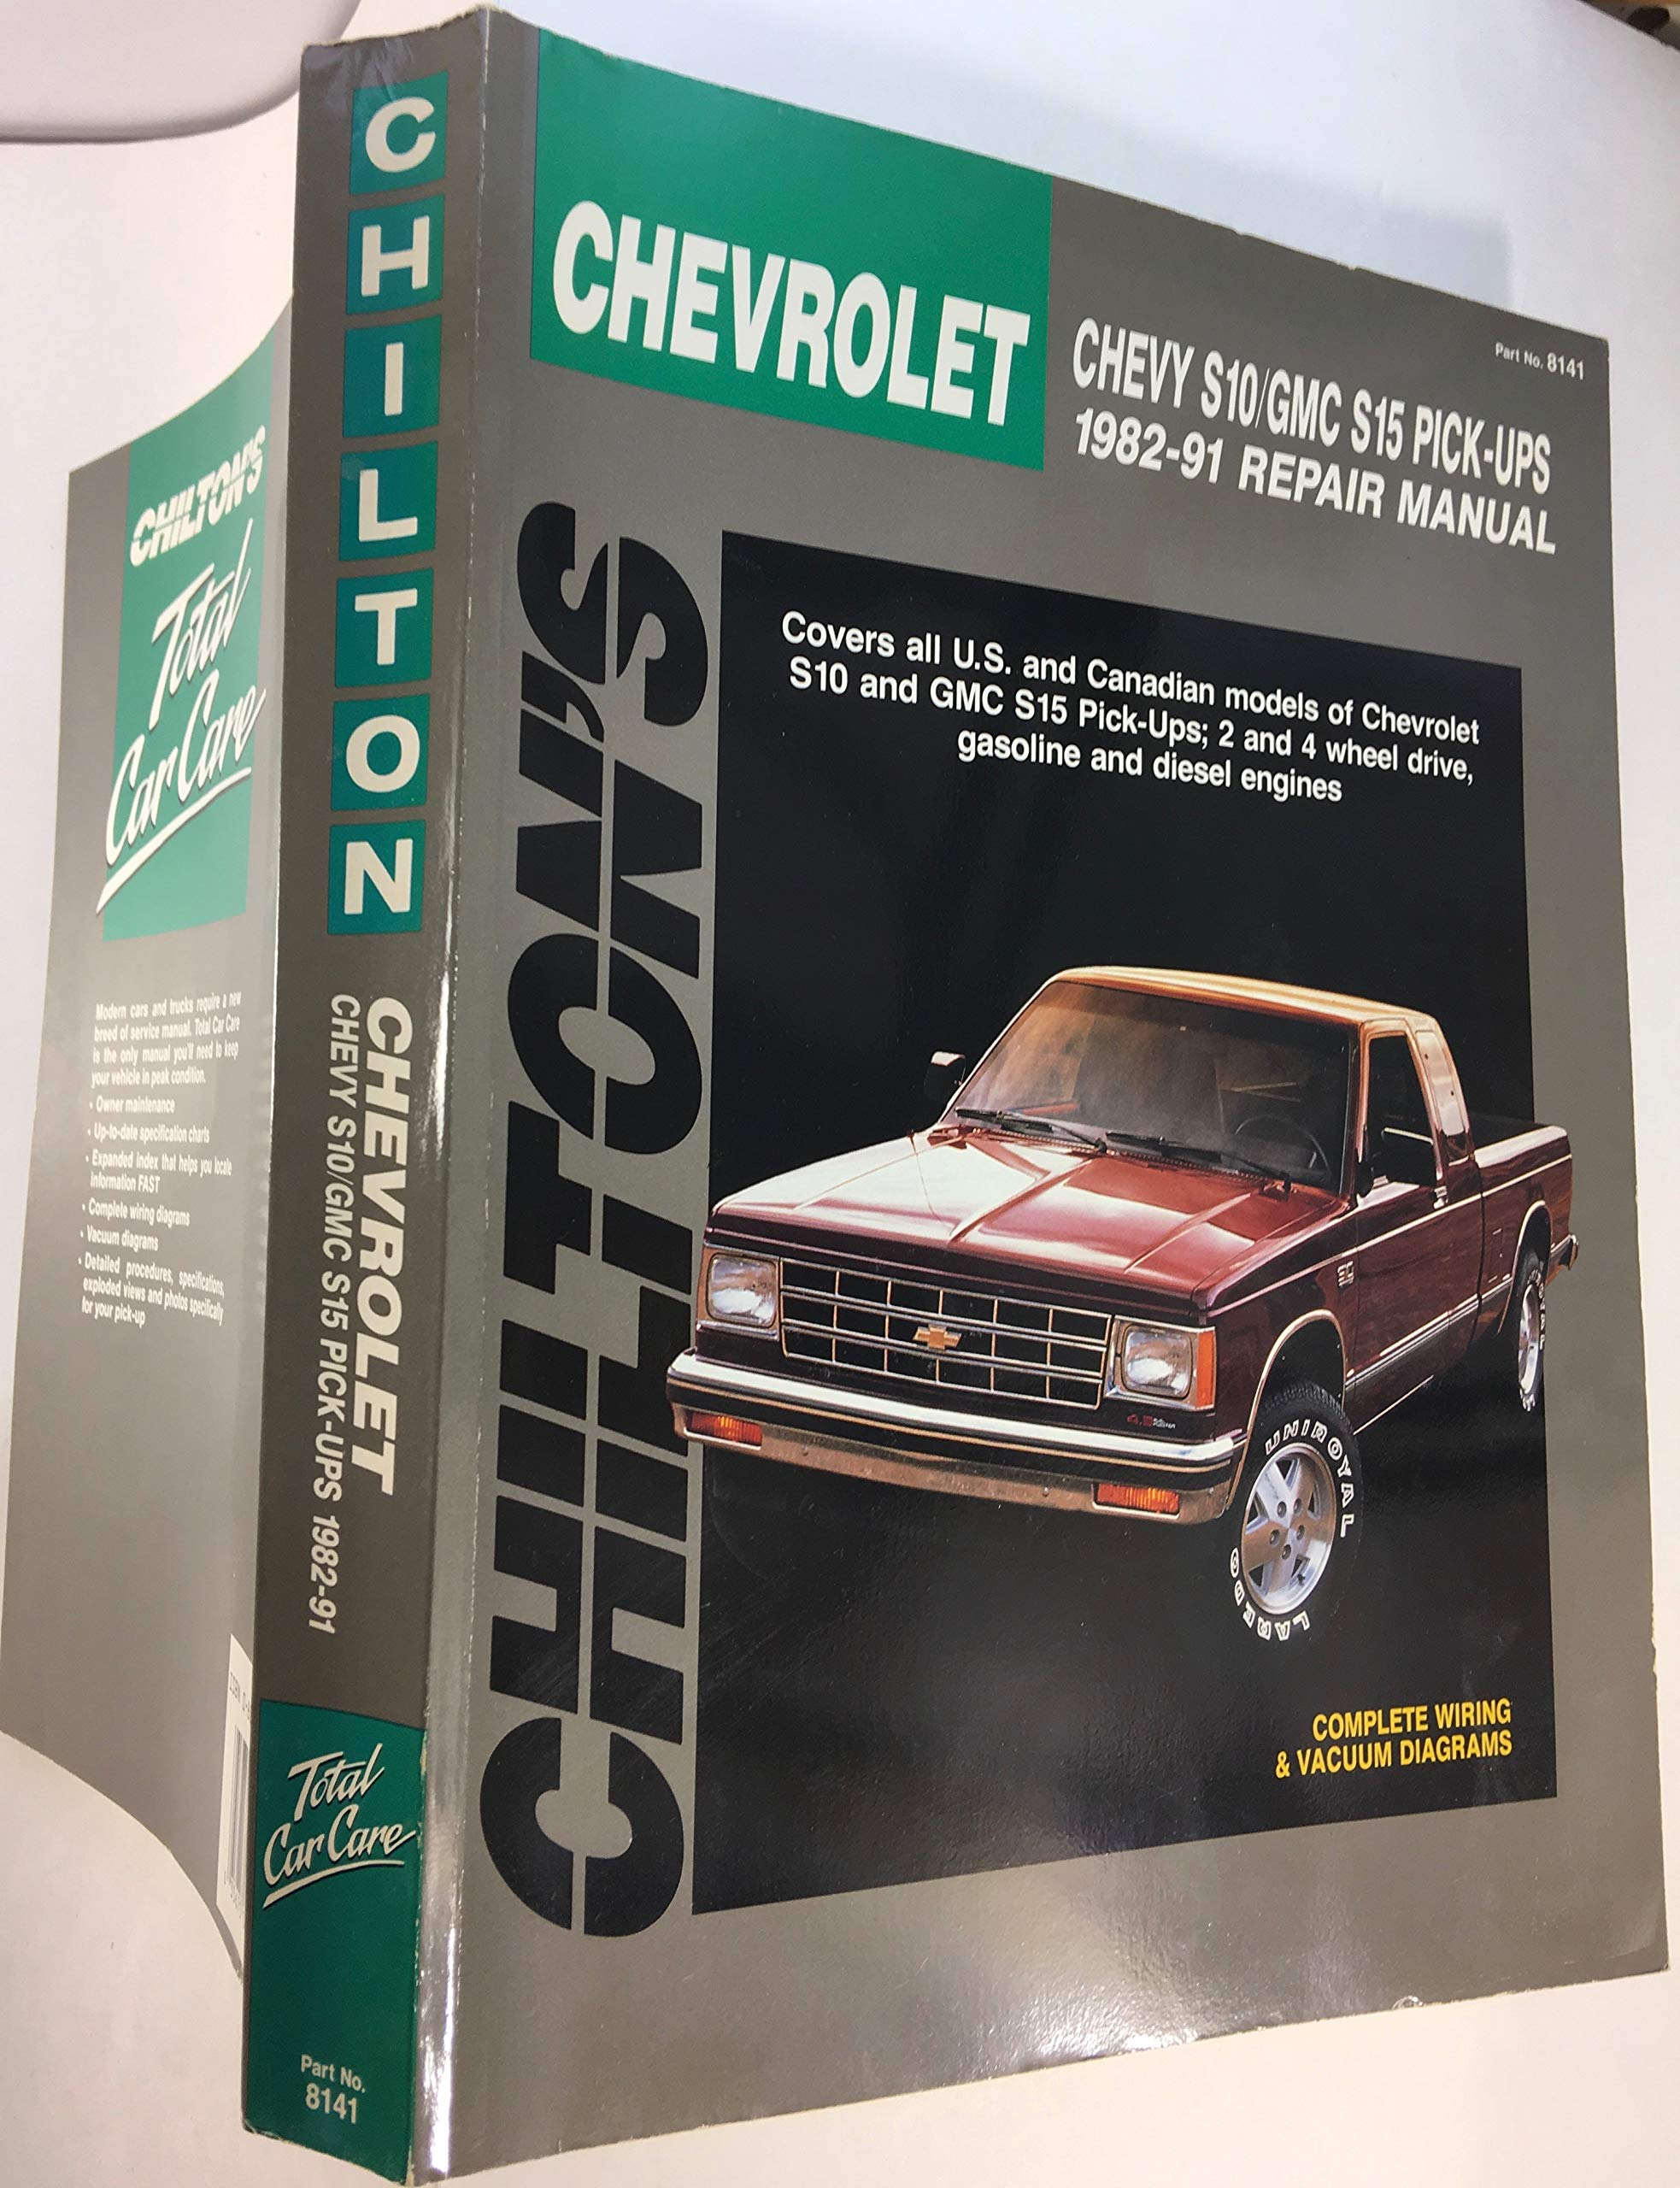 Chilton's Chevrolet Chevy S10/GMC S15 Pickups 1982-91 Repair Manual on 1972 chevy truck wiring diagram, chevrolet engine wiring diagram, chevrolet trailer wiring diagram,